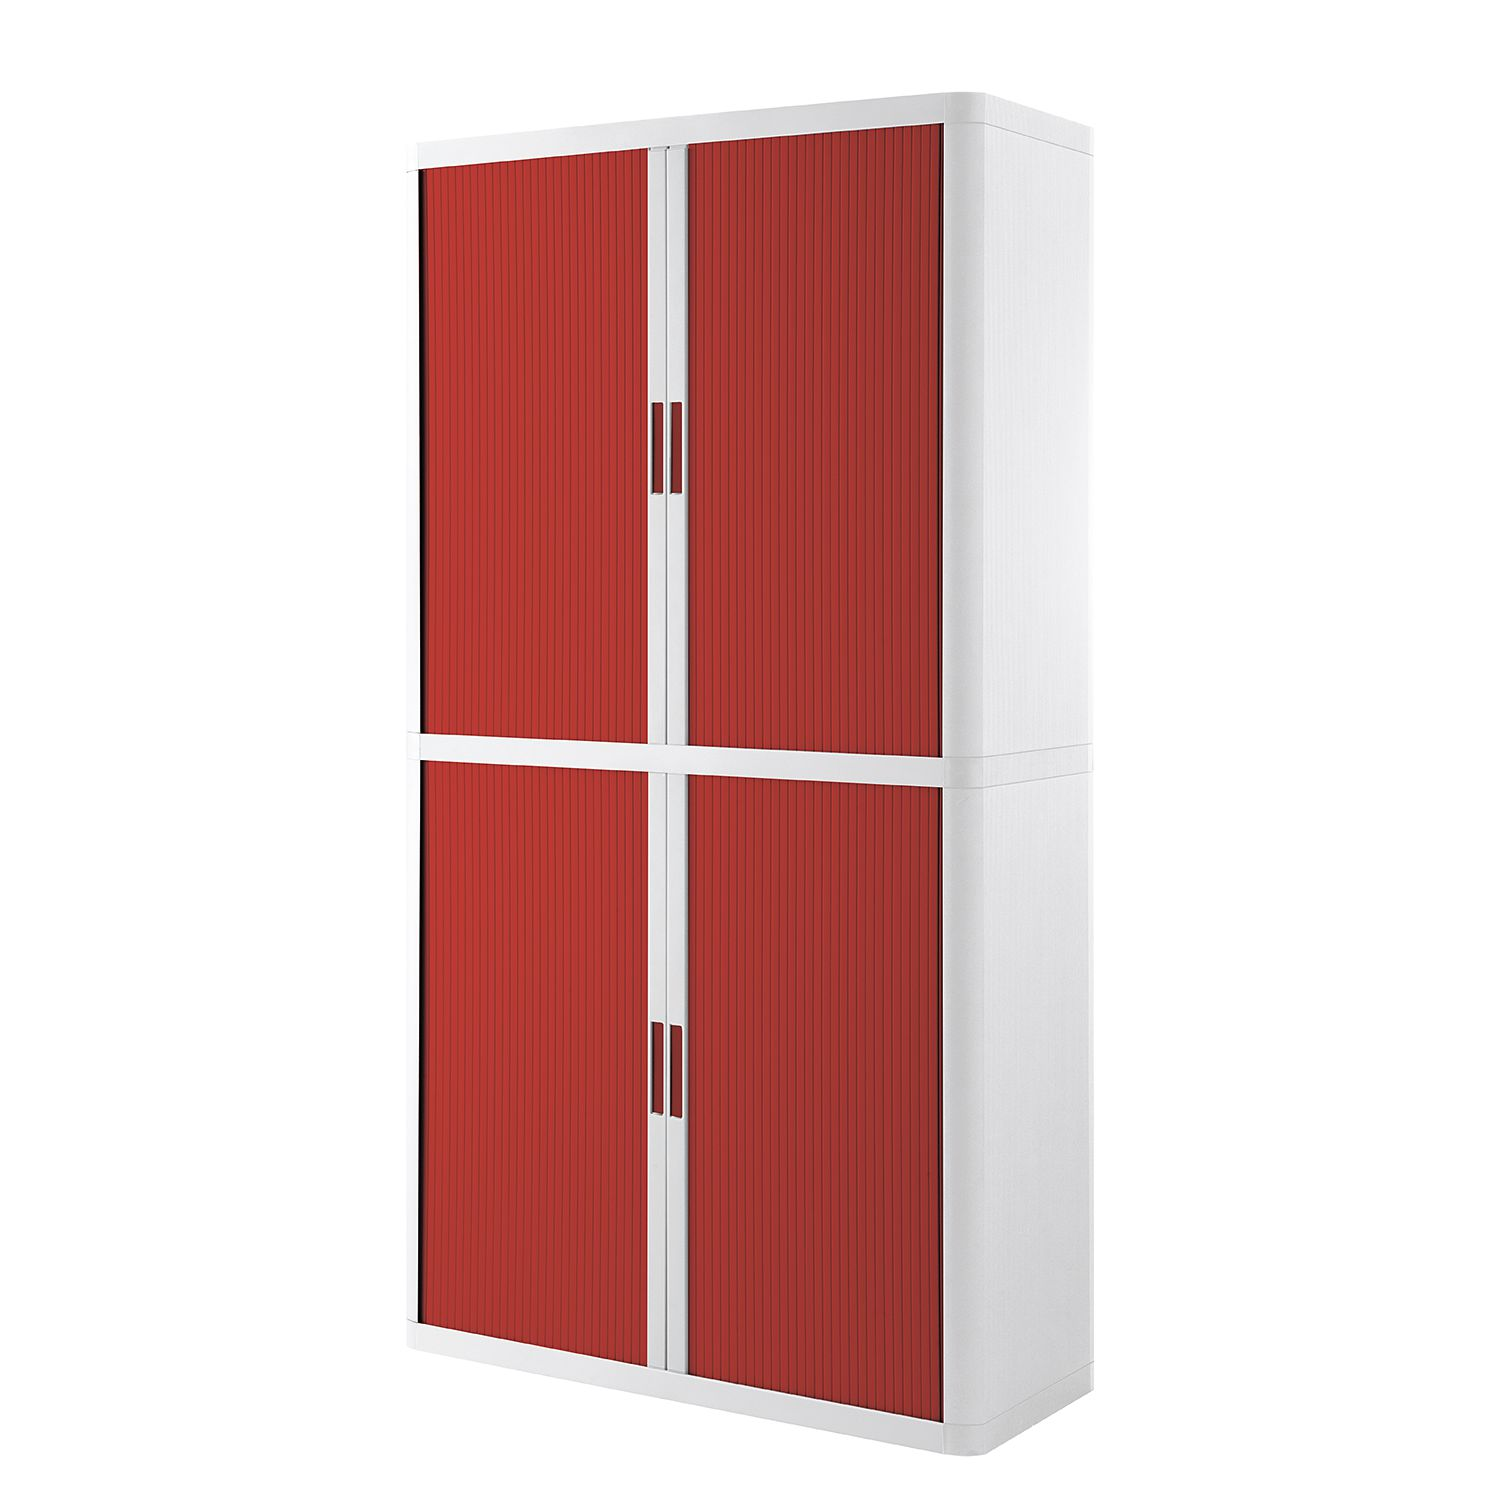 Dossierkast easyOffice - Wit/rood - 204cm, easy Office und Paperflow